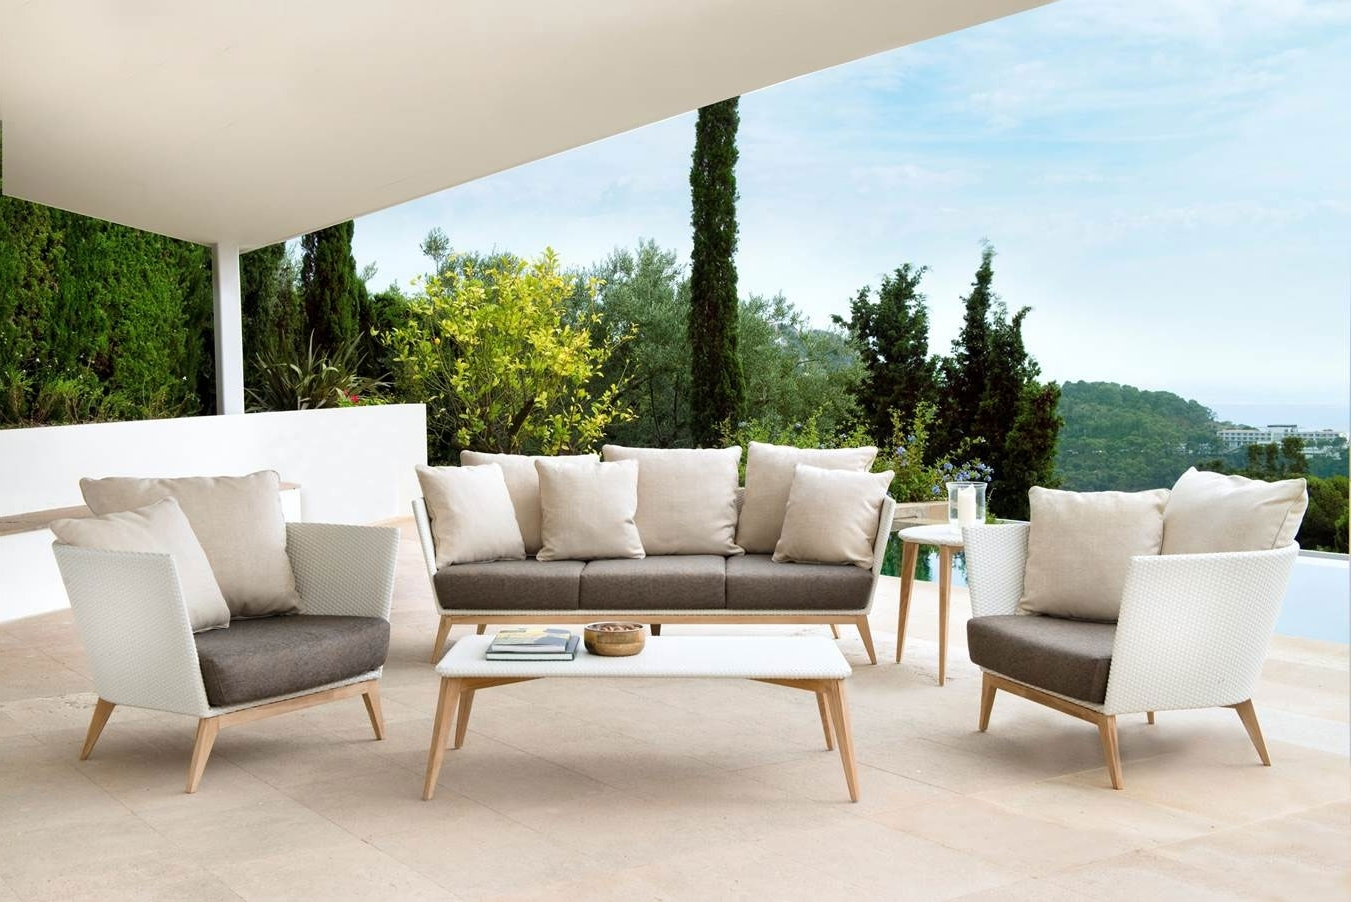 Upscale Patio Umbrellas In Latest Patio: Cool Luxury Patio Furniture Best Outdoor Furniture, High End (Gallery 18 of 20)